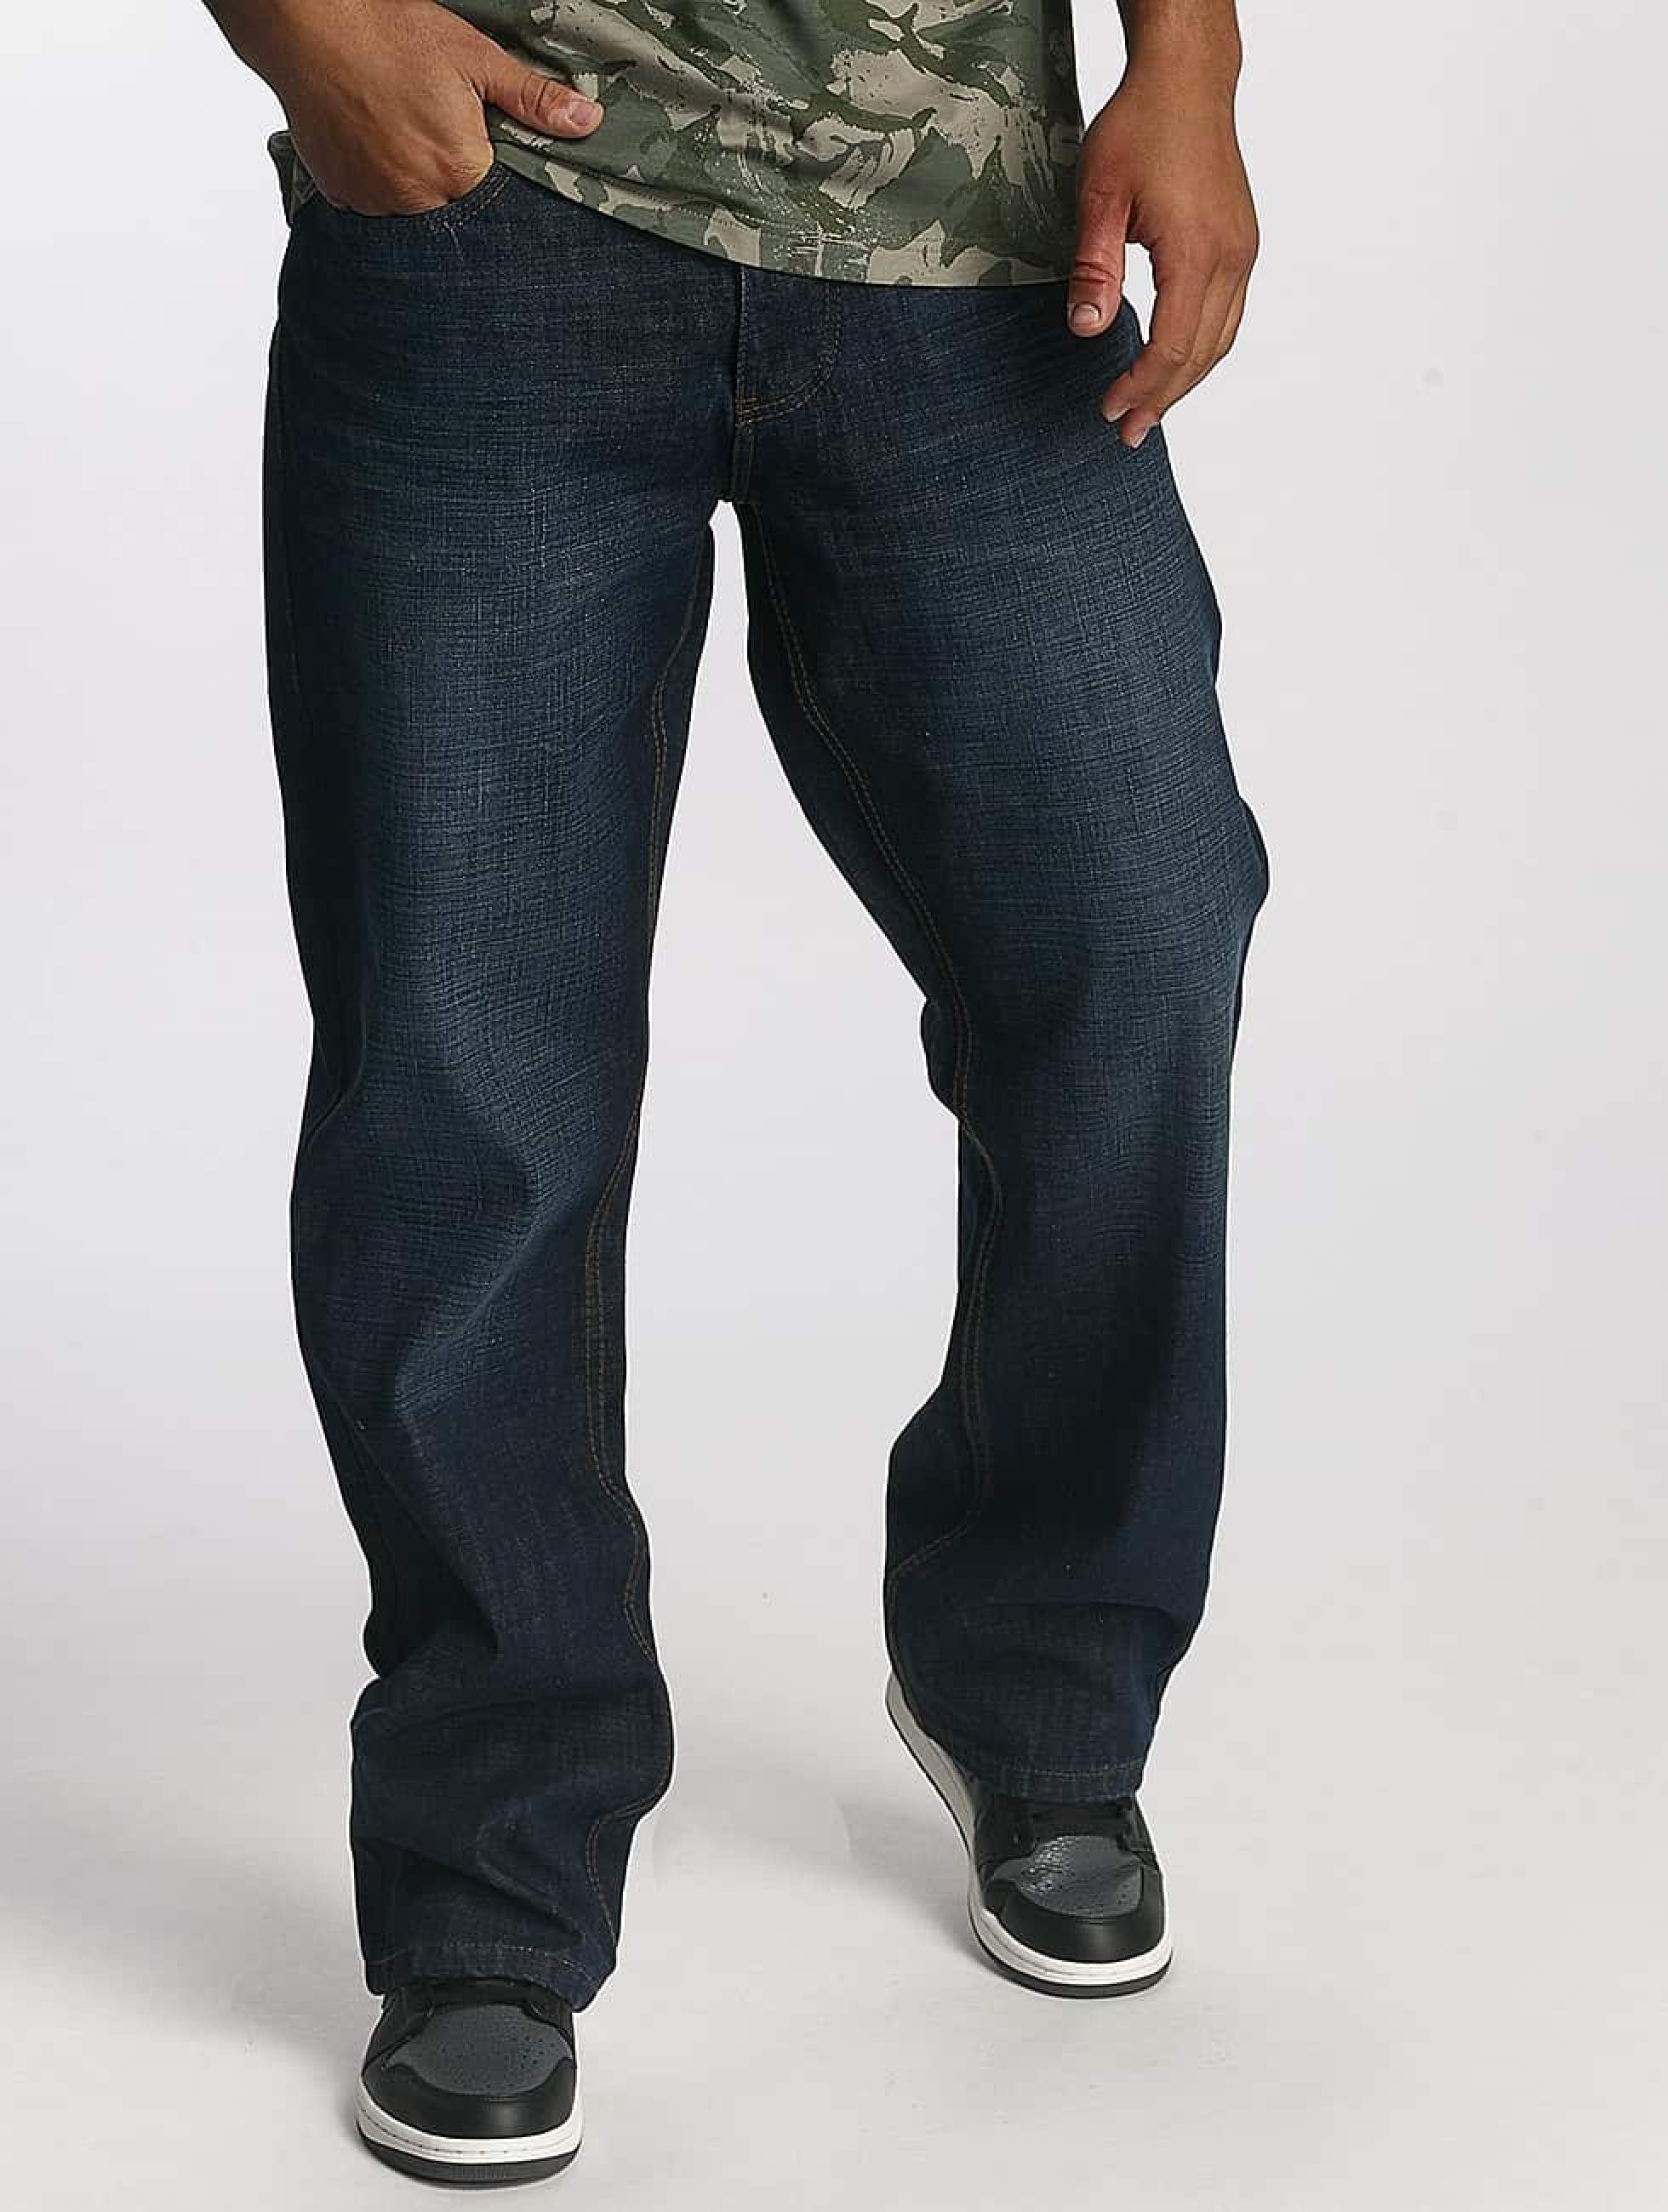 Rocawear / Loose Fit Jeans Loose Fit in blue W 42